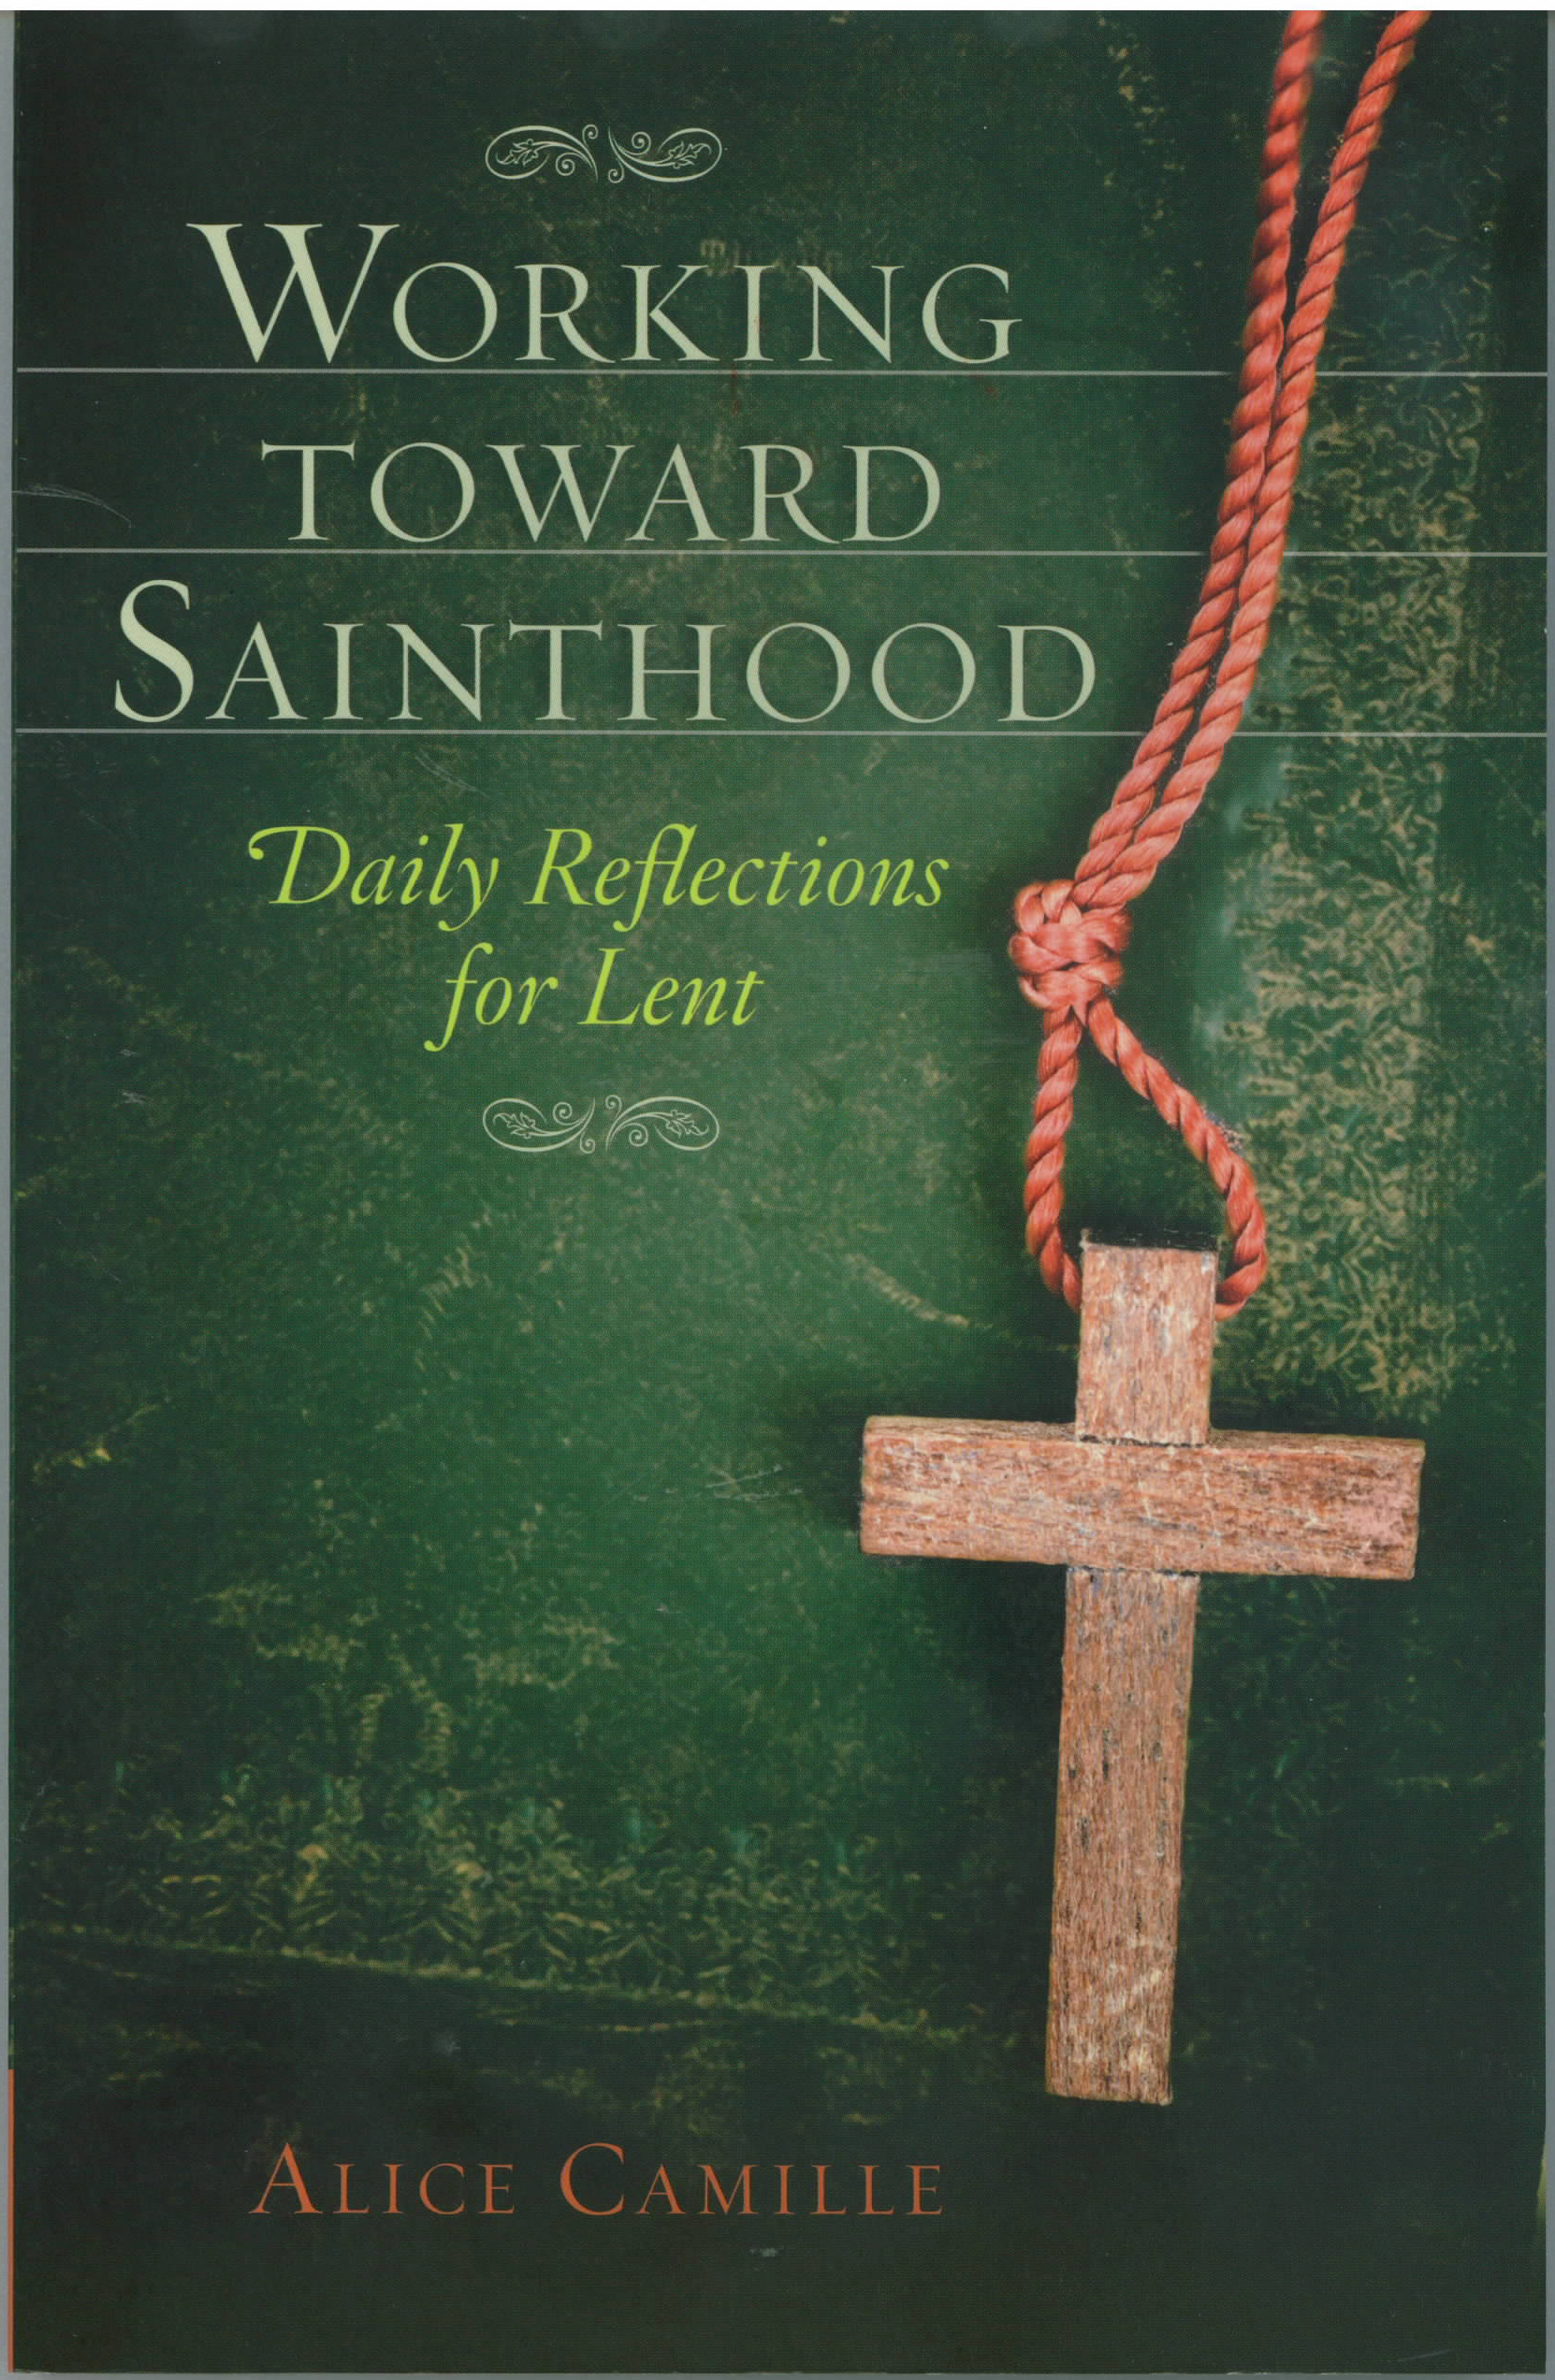 Working Toward Sainthood: Daily Reflections for Lent by Alice Camille 97818585959242